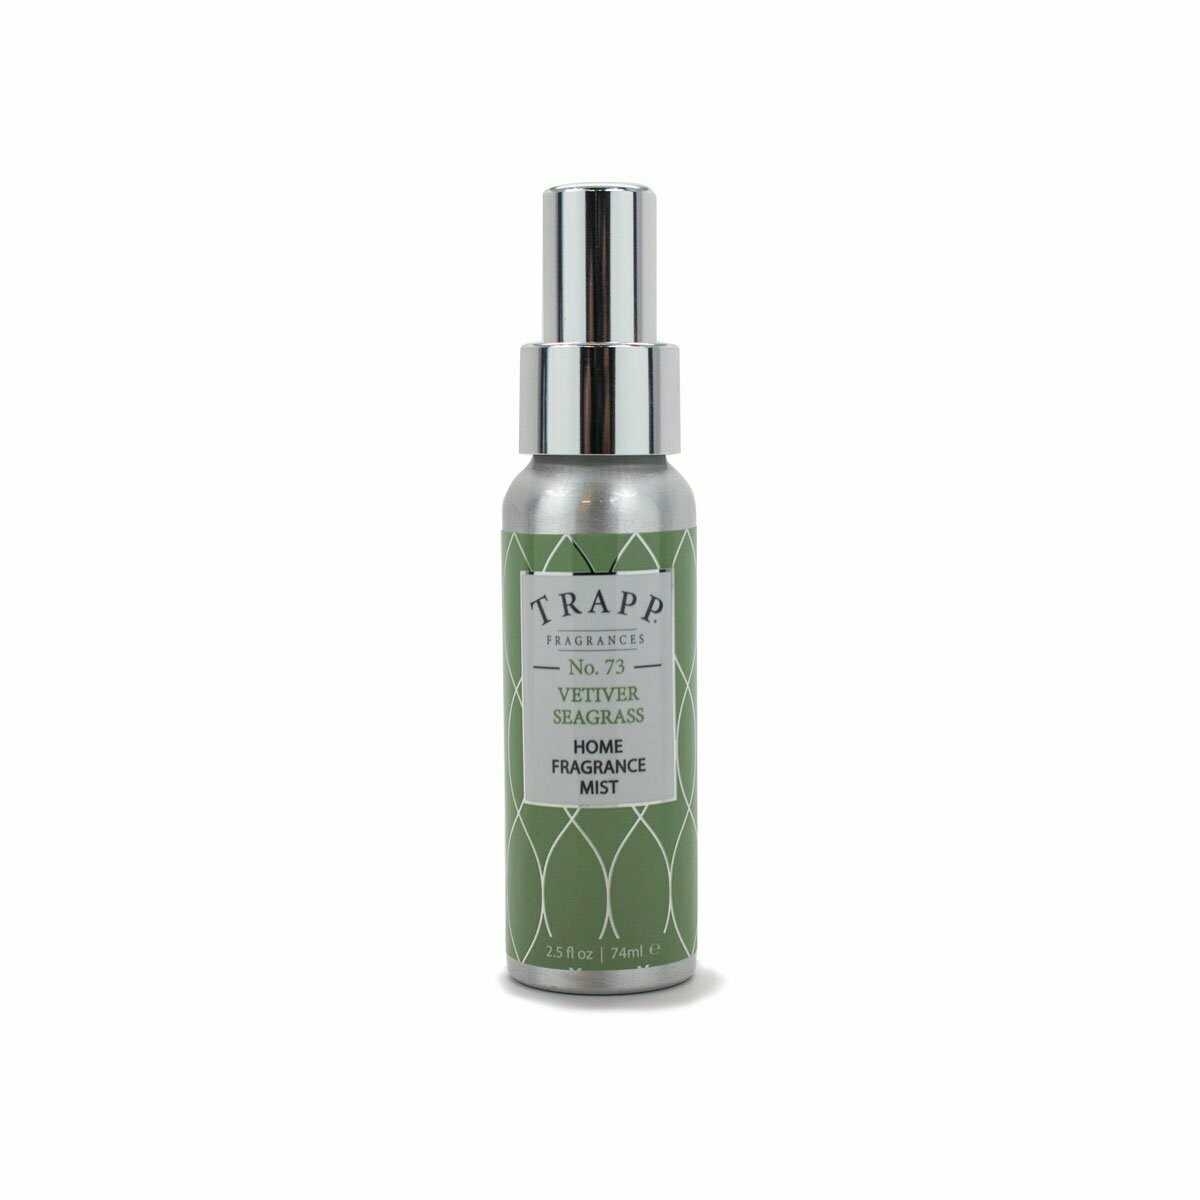 Trapp Home Fragrance Mist No. 73 Vetiver Seagrass